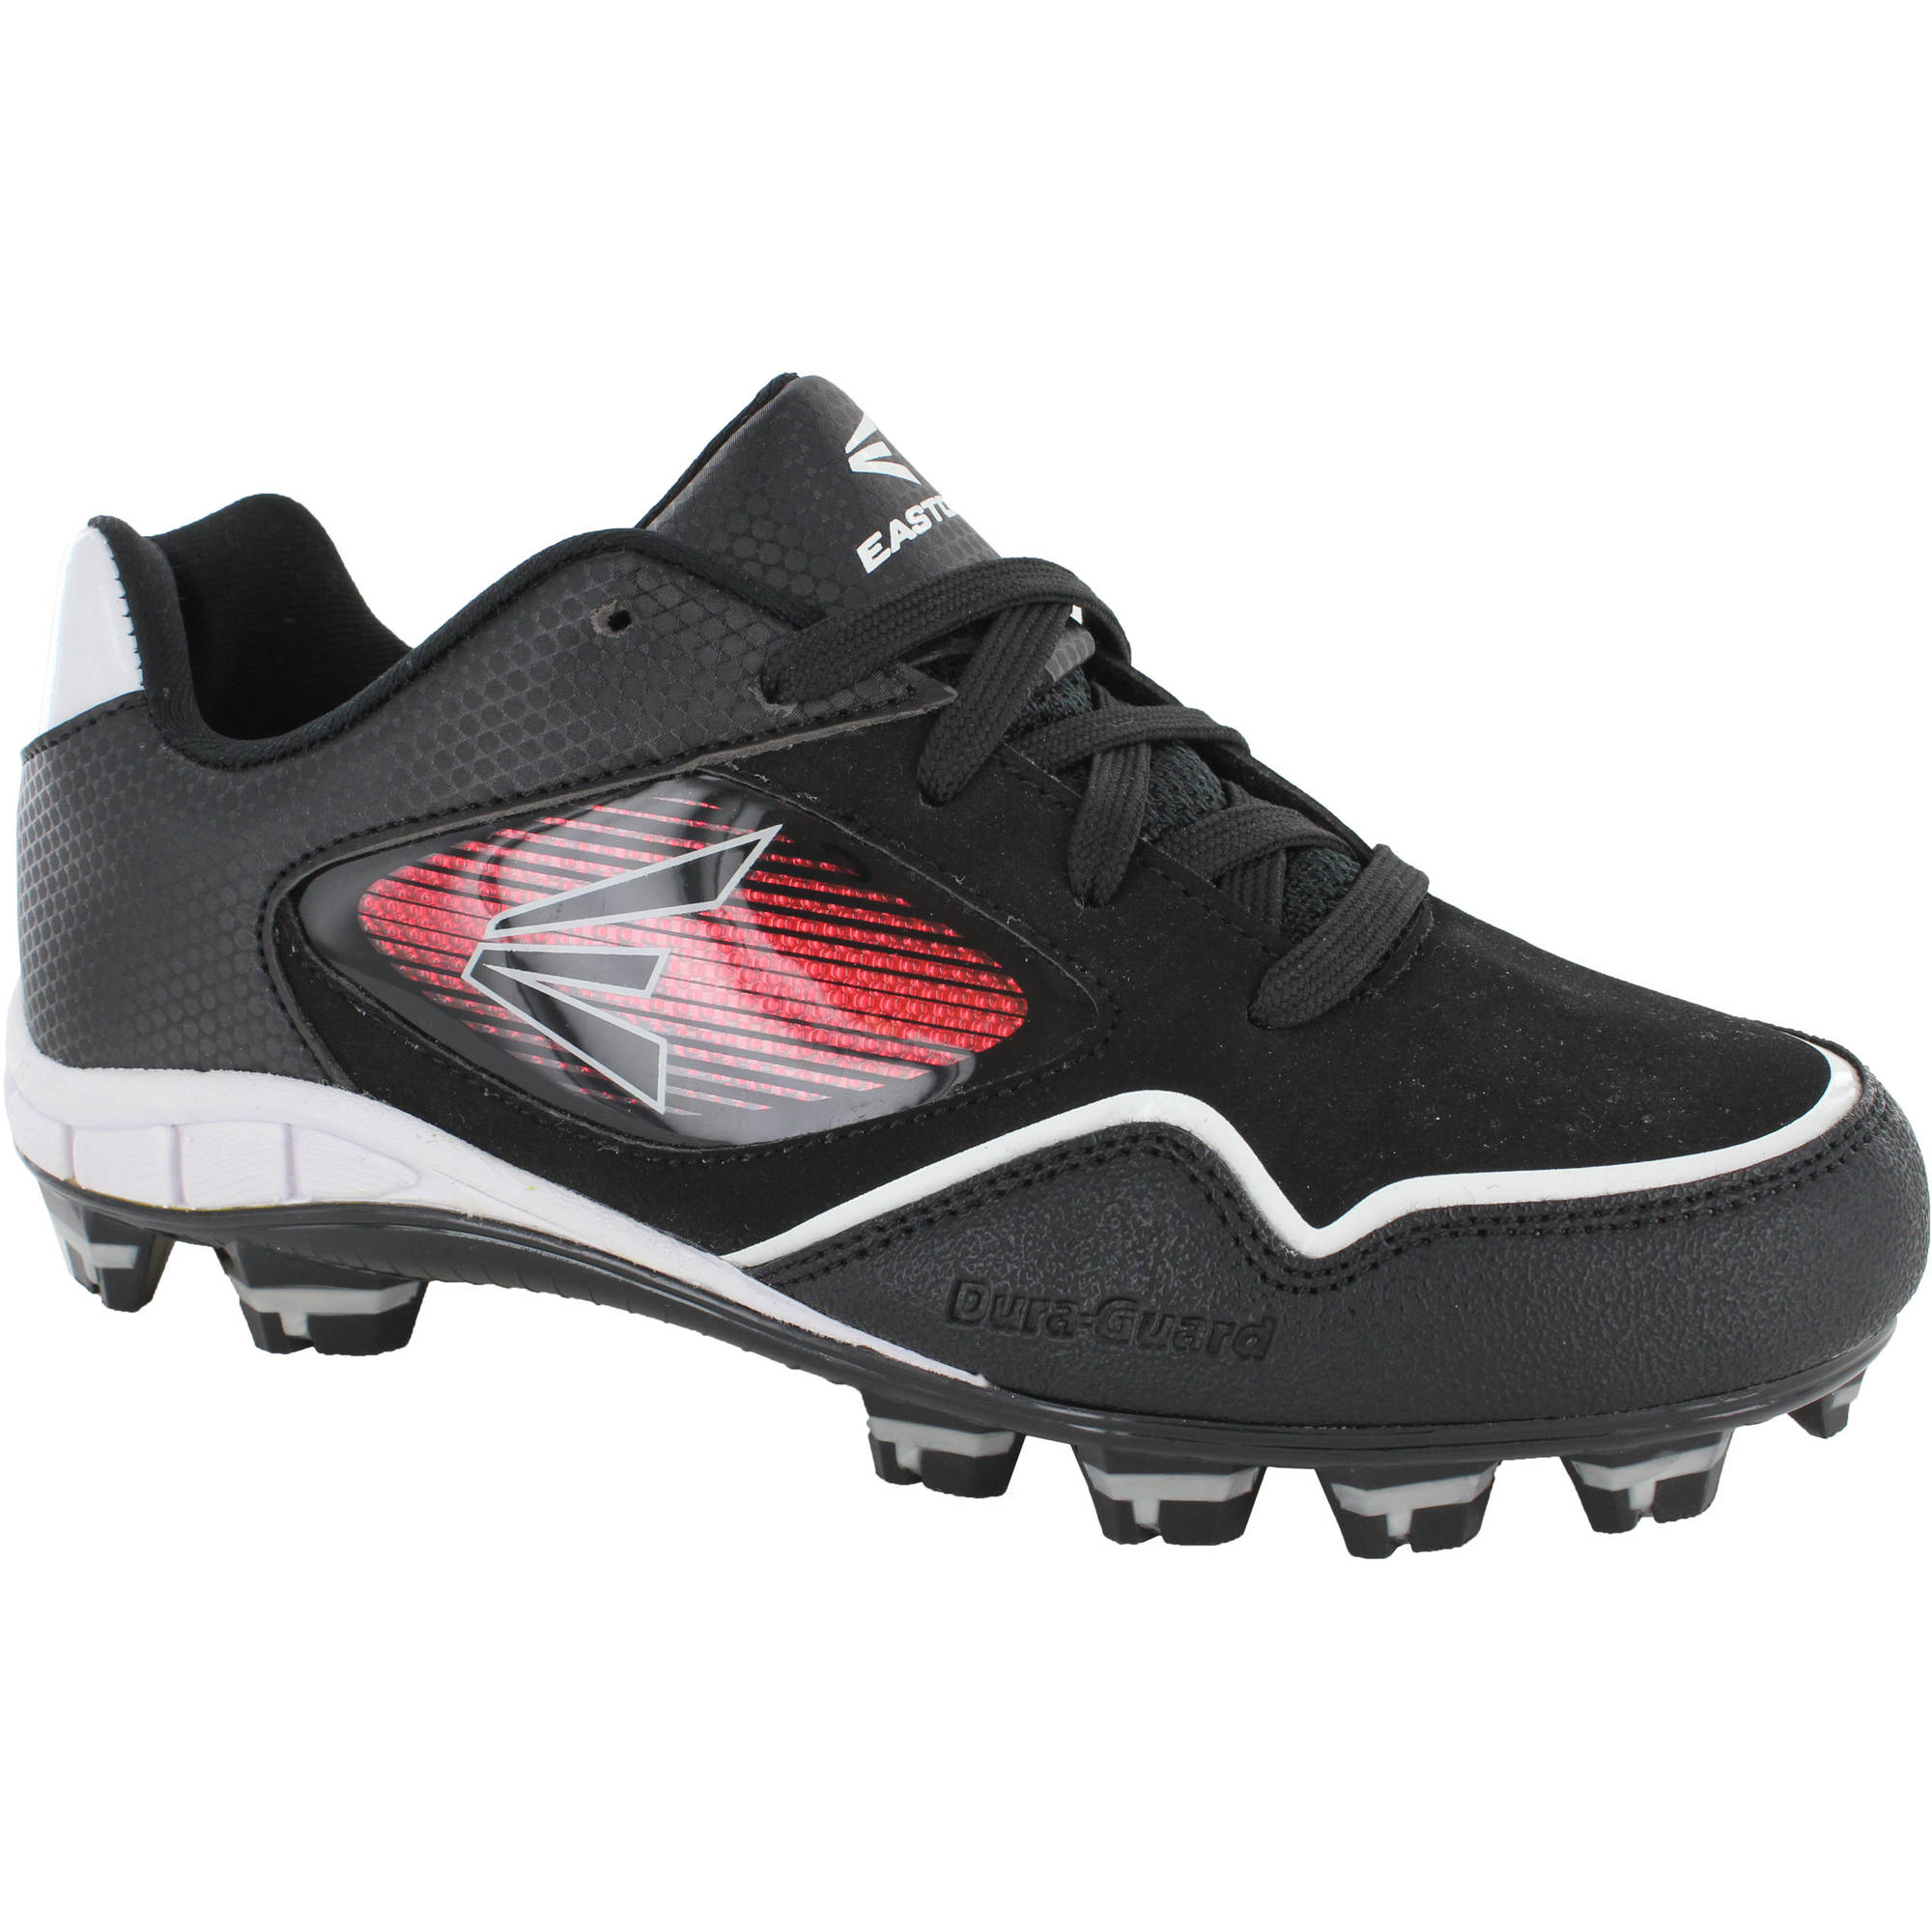 Easton Boys' CX2 Low Cleat